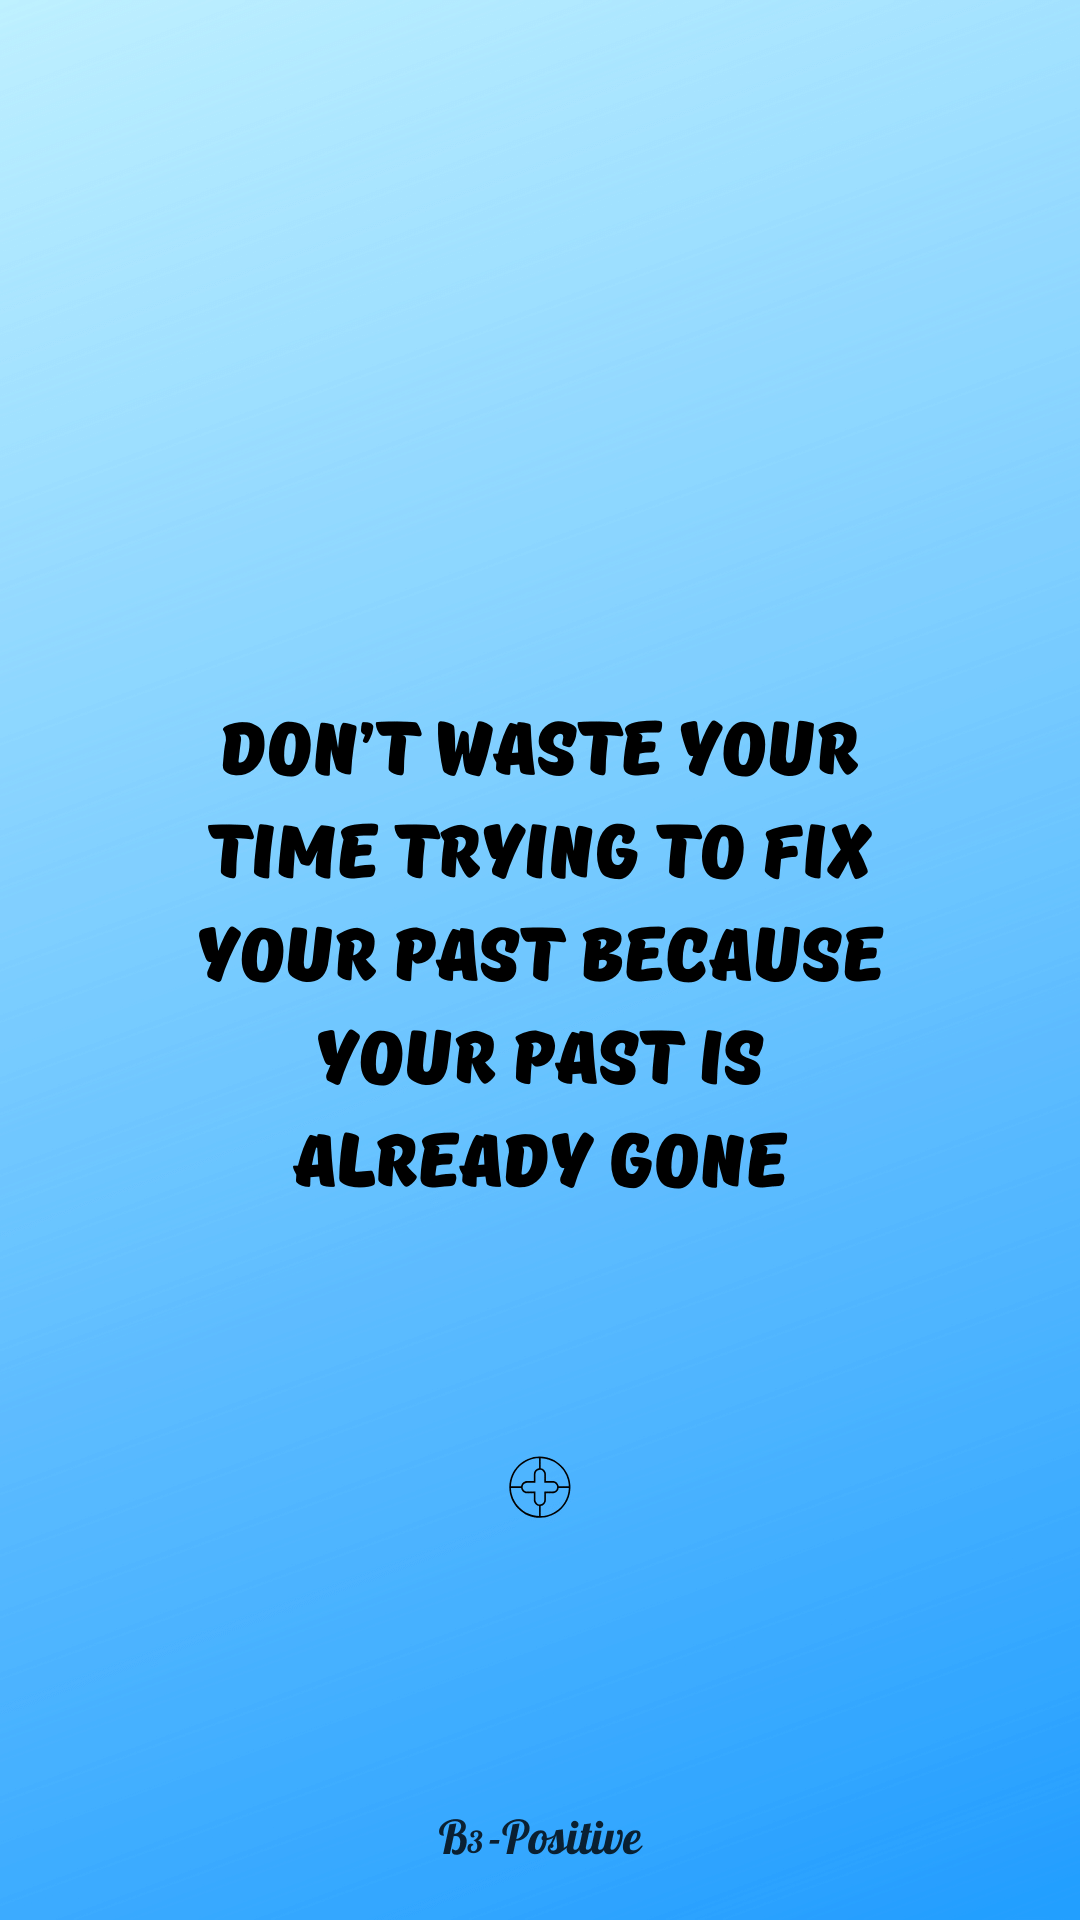 Stop Wasting Time Quotes Positive Life Quotes Wallpaper Positive Quotes For Life Time Quotes Me Time Quotes